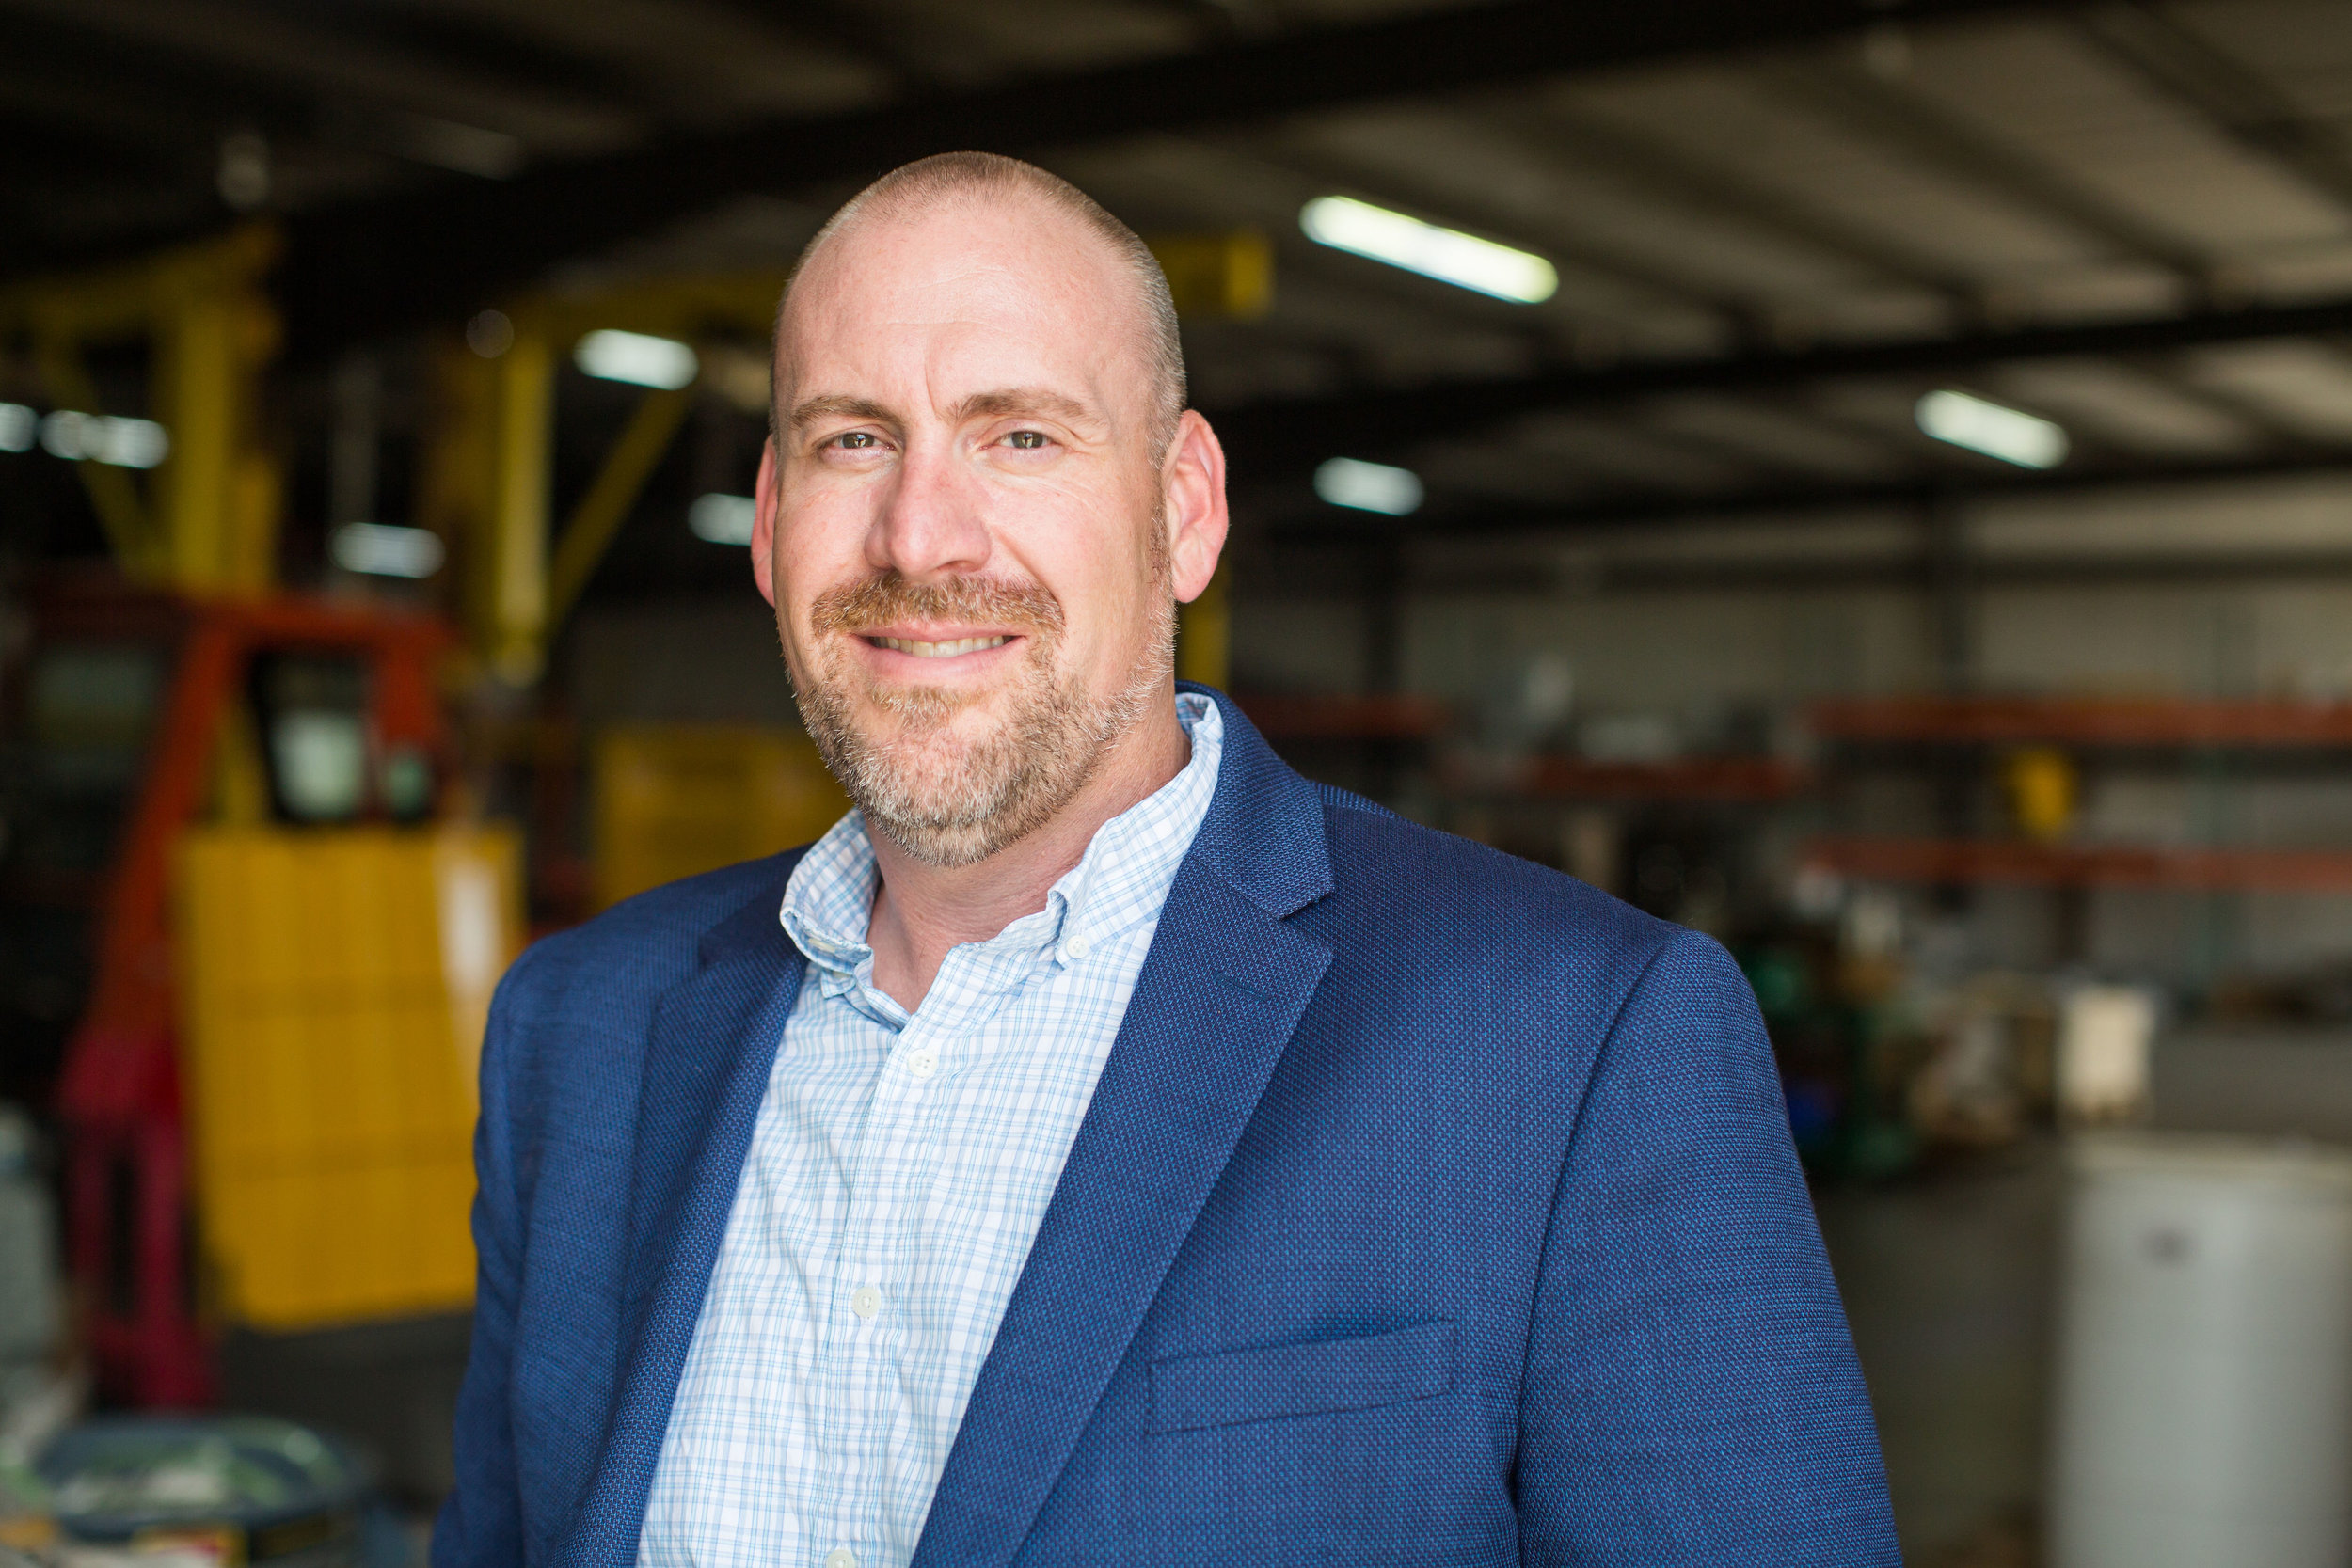 Neal Spencer, president and CEO of Ernest-Spencer, plans to focus inorganic growth by investing in new technology that will maximize production for existing customers.